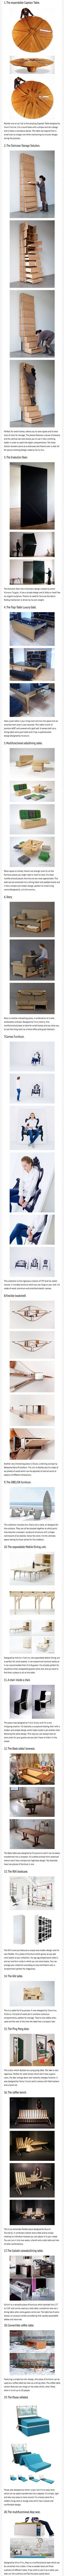 Here are some weird furniture designs that just might be genius.